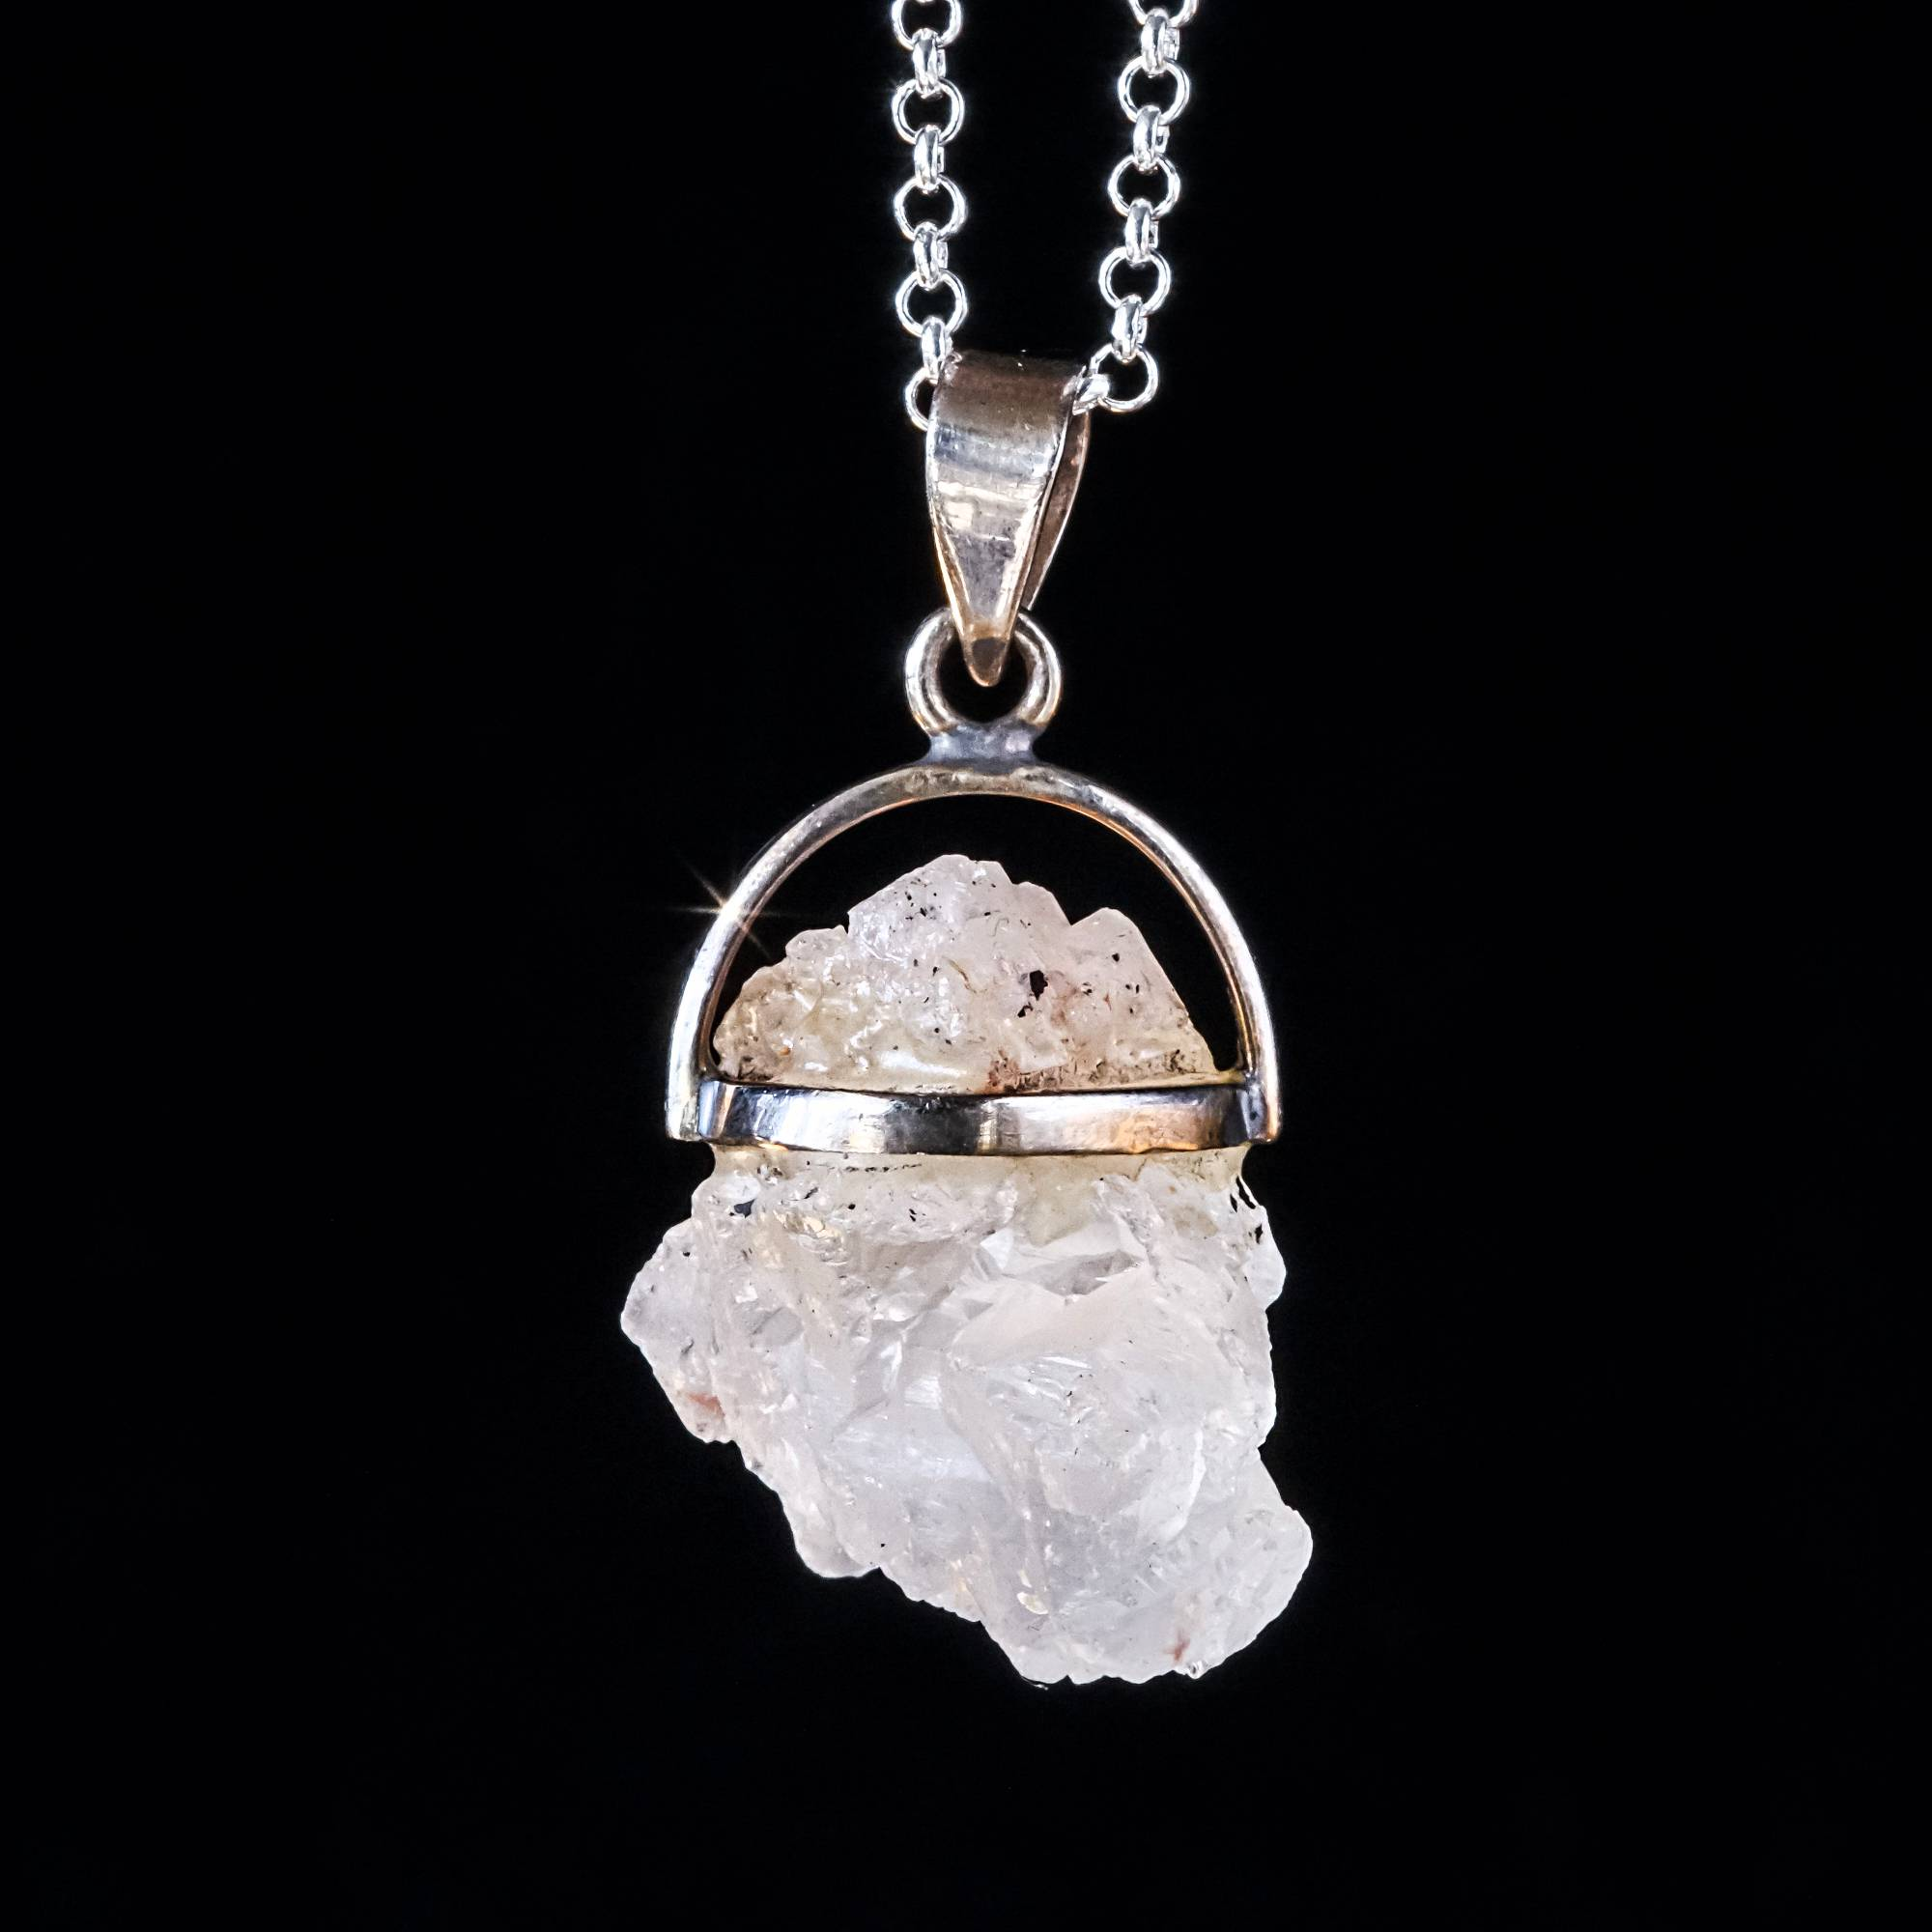 Nirvana quartz pendants for heart healing and enlightenment nirvana quartz pendants mozeypictures Image collections